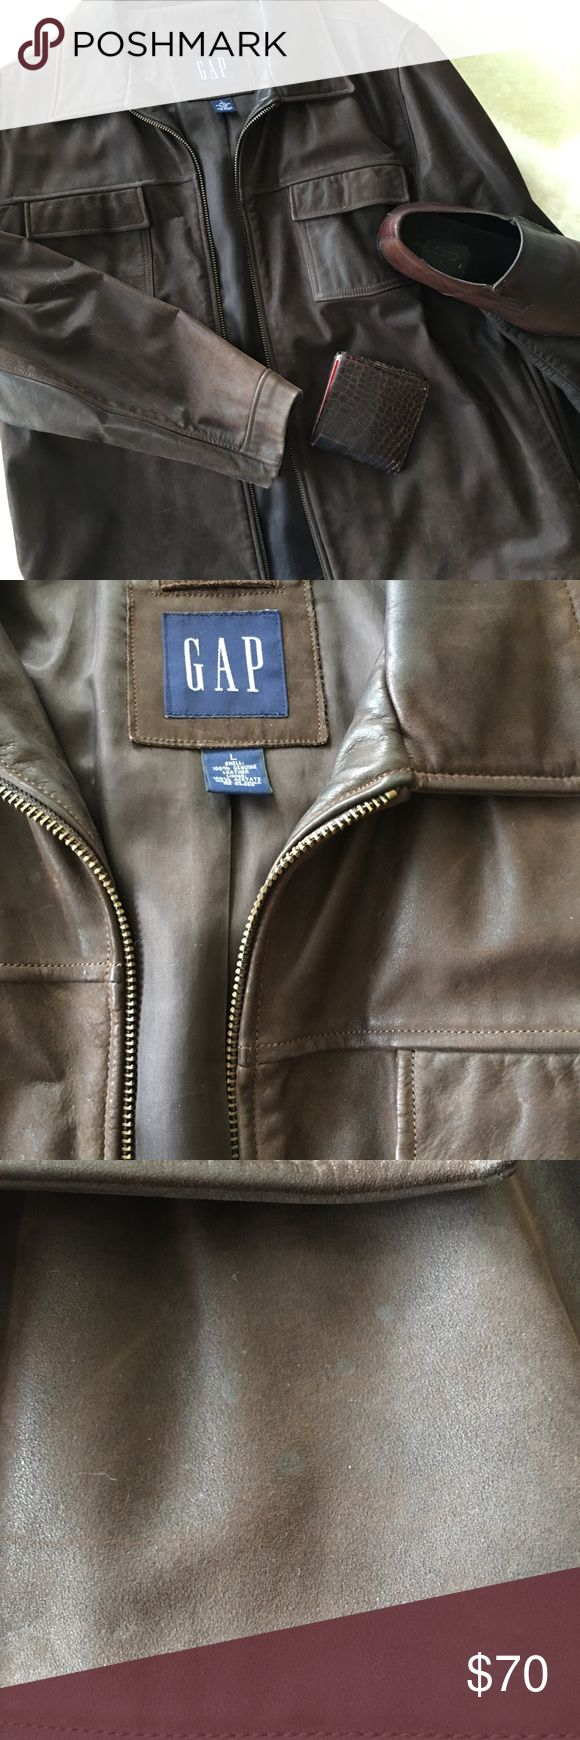 Brown Gap Leather Jacket Men's stylish brown leather jacket in great condition. Great for any occasion. Two pockets on the inside, two on the bottom outside the jacket as well as top functioning pockets on top, which makes this jacket not only cool, but super functional😎. Minor stain shown, but not noticeable when on.  💯% Genuine Leather GAP Jackets & Coats Bomber & Varsity